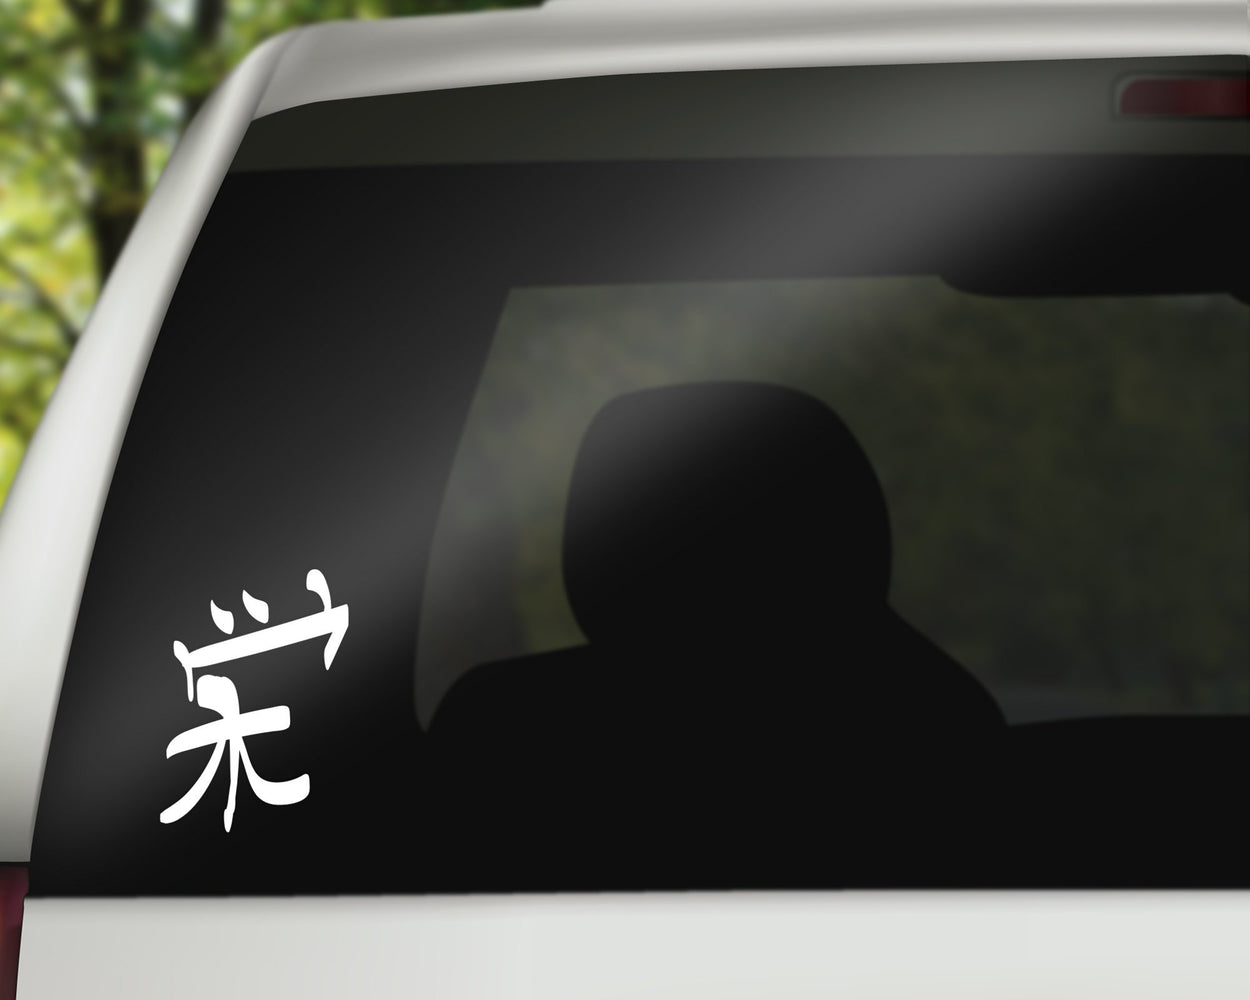 Prosperity | Japanese Word Art Decal, Car Decals, pyaonline